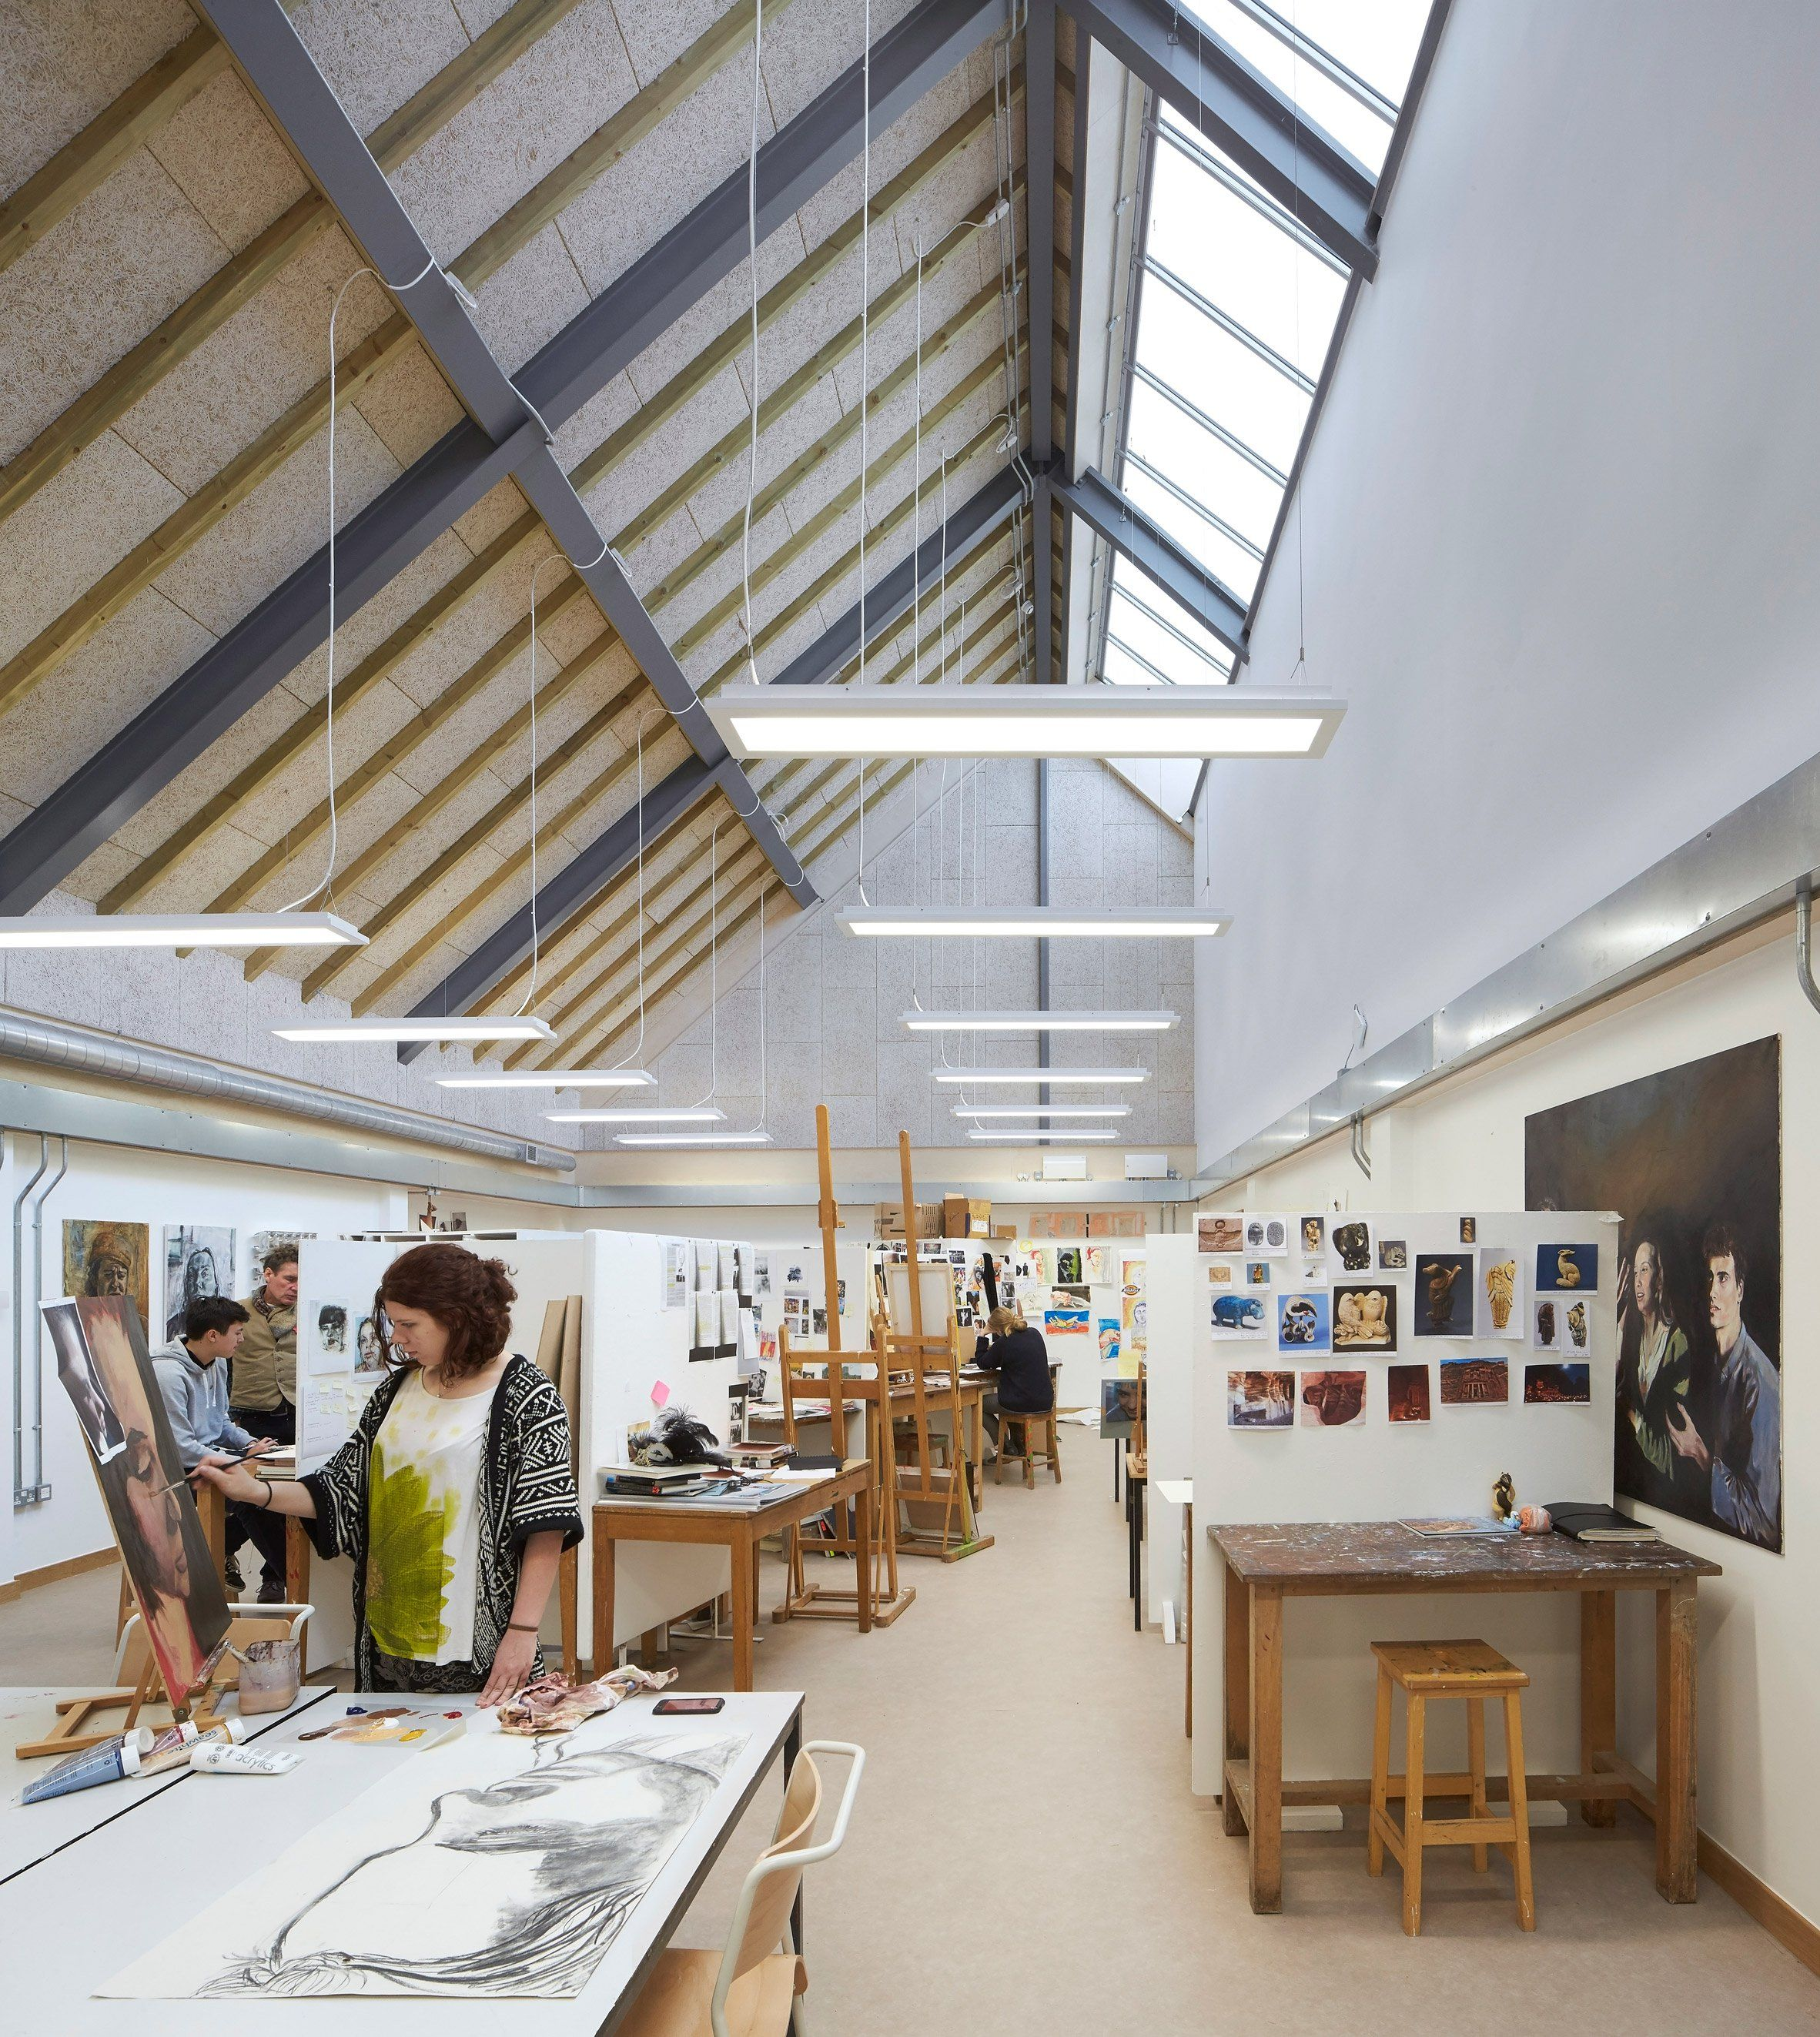 A Row Of Pitched Roof Buildings Make Up Feilden Clegg Bradley Studios Art And Design Building Art Studio Design Classroom Architecture Education Architecture